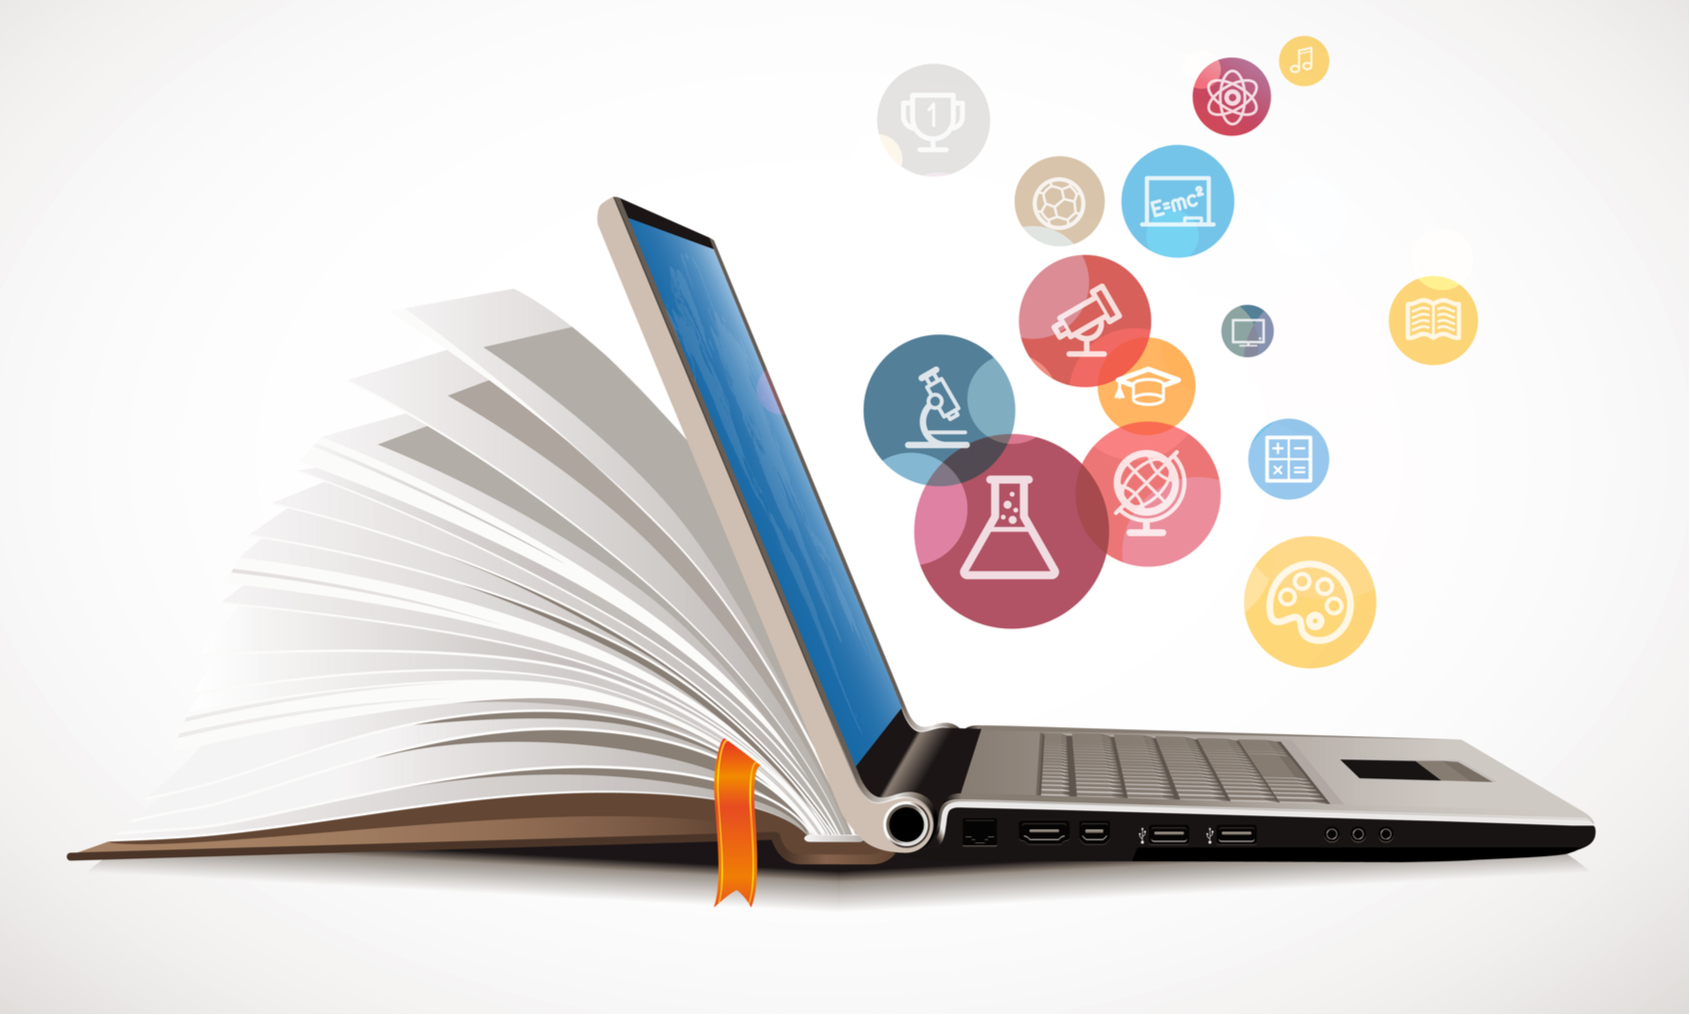 E-learning image of a book flipping into an open laptop